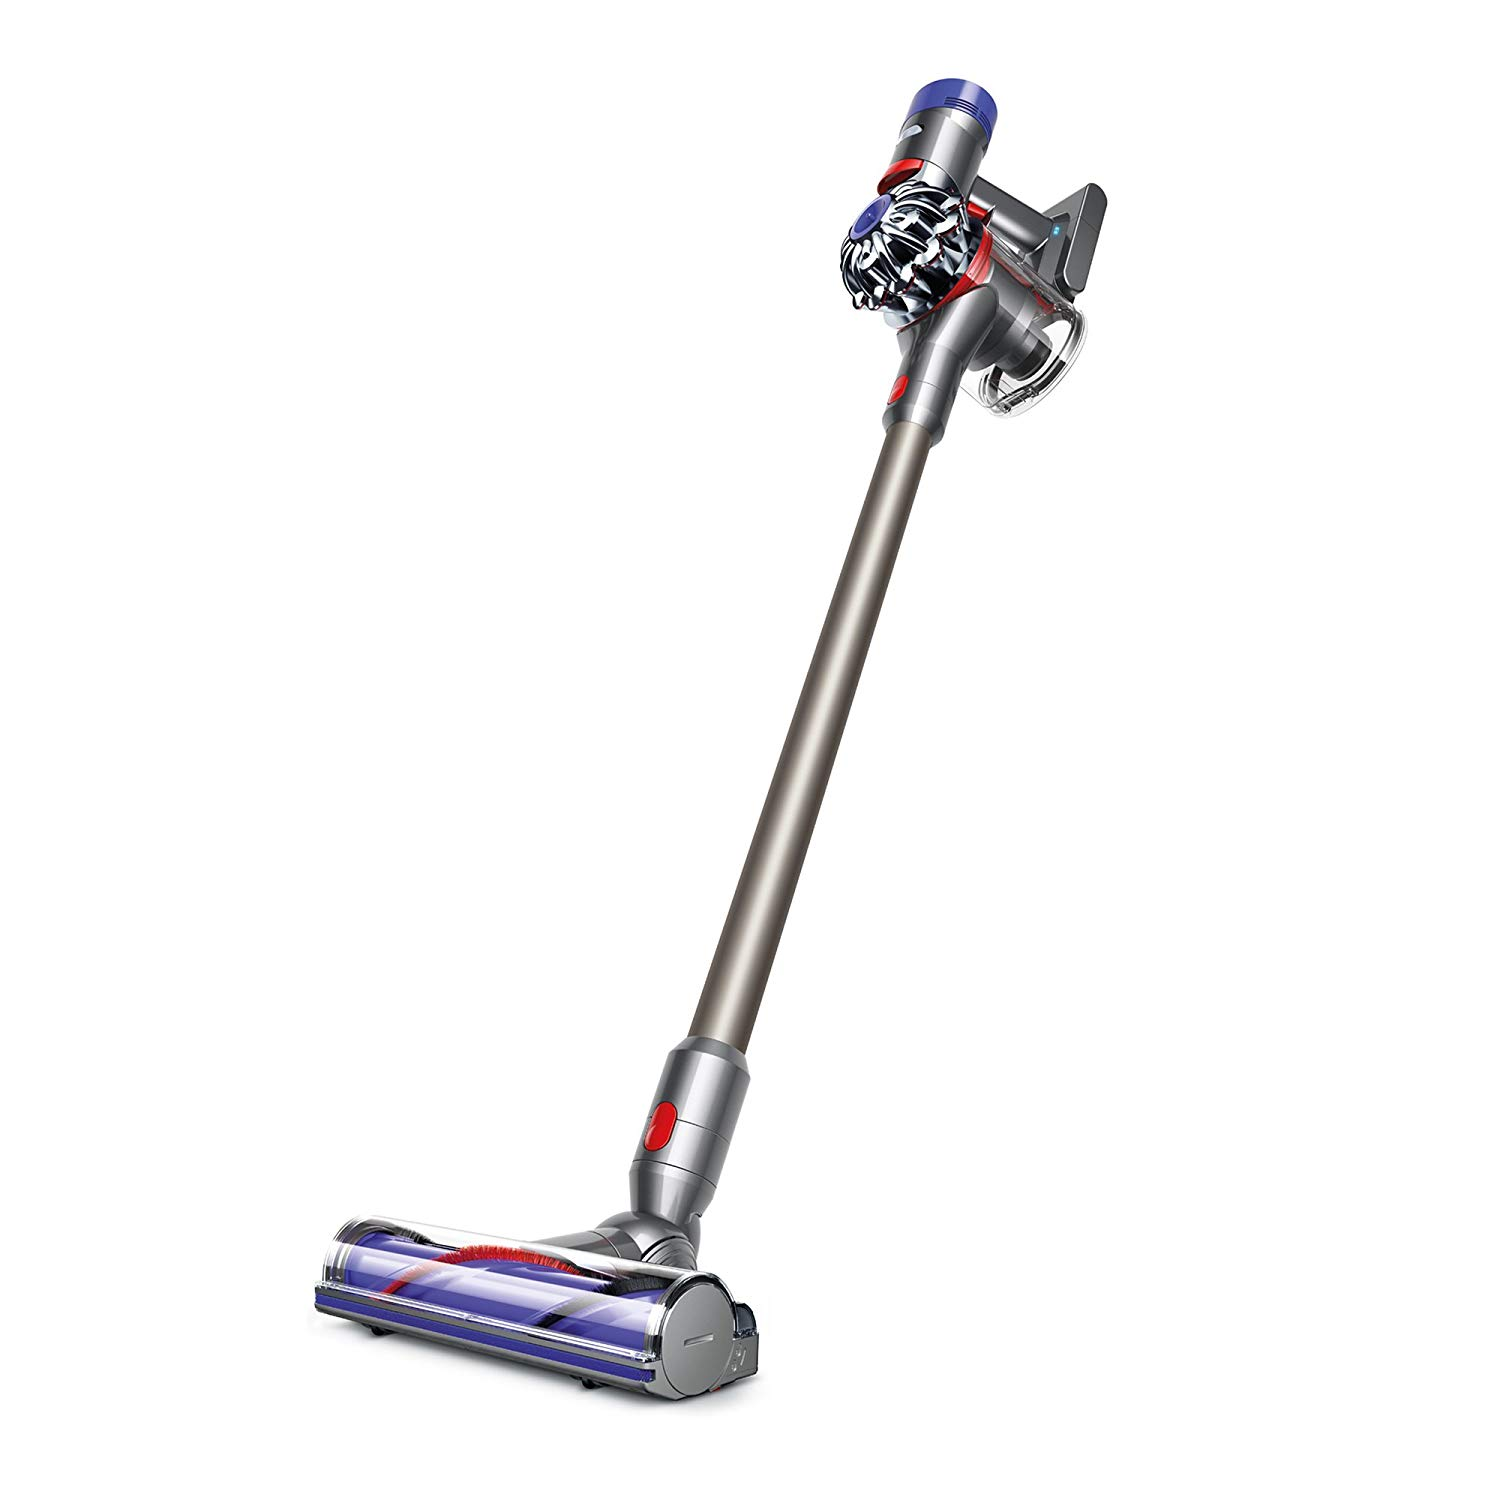 Review of Dyson V8 Animal Cordless Stick Vacuum Cleaner, Iron